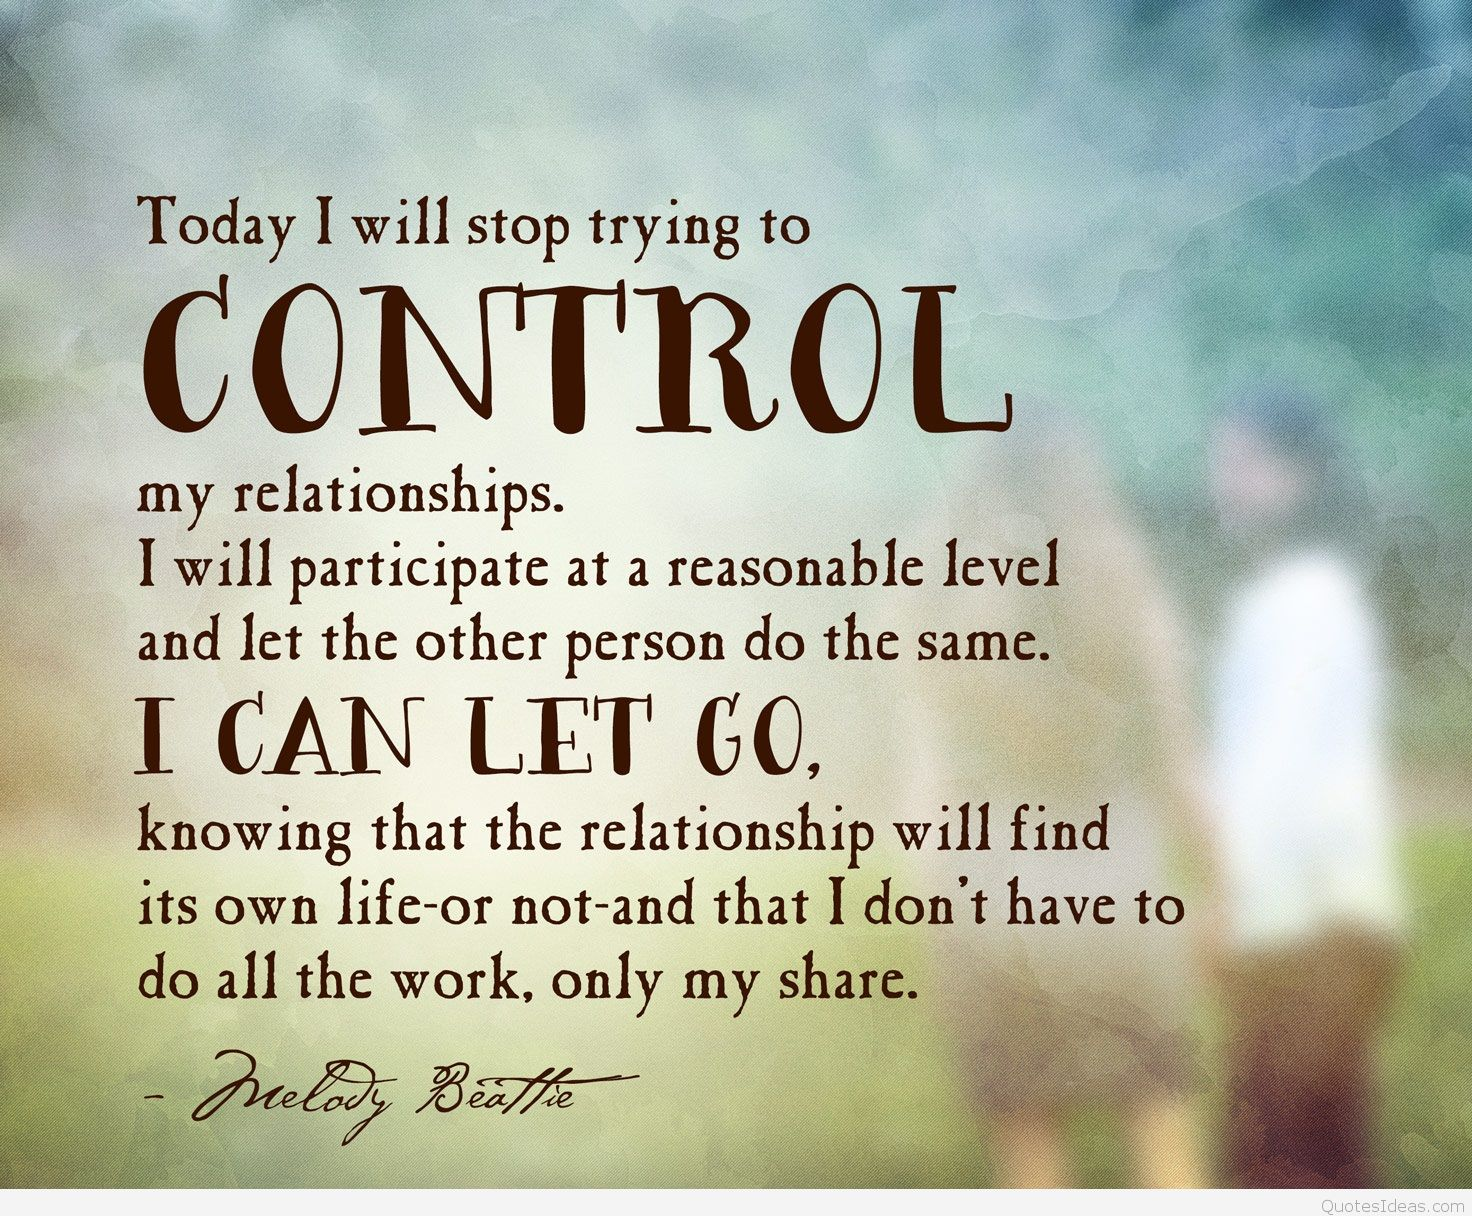 Control my relationship quote picture